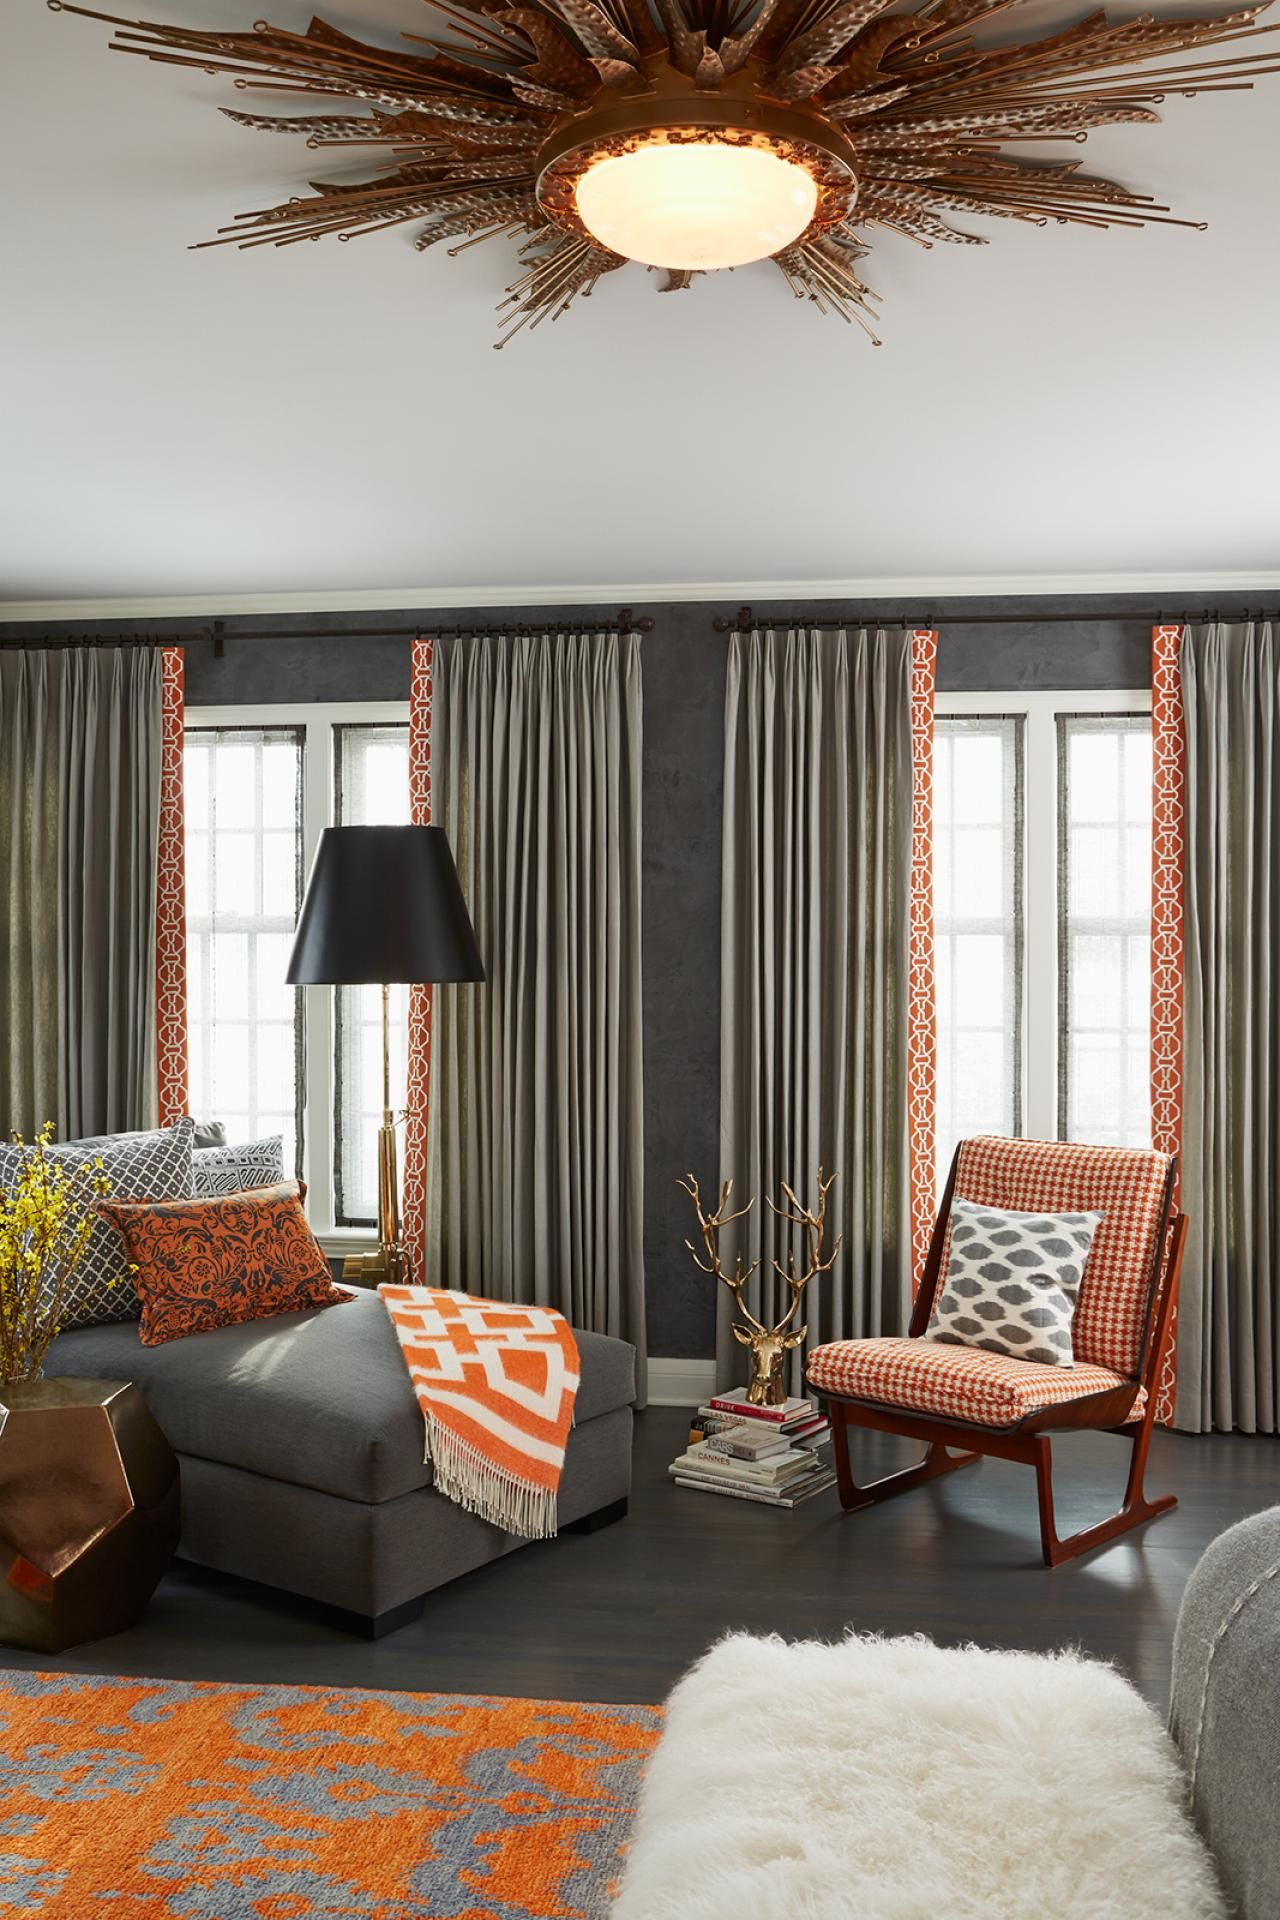 Decorating With Orange Orange Decorating Ideas Living Room Orange Grey And Orange Living Room Living Room Grey